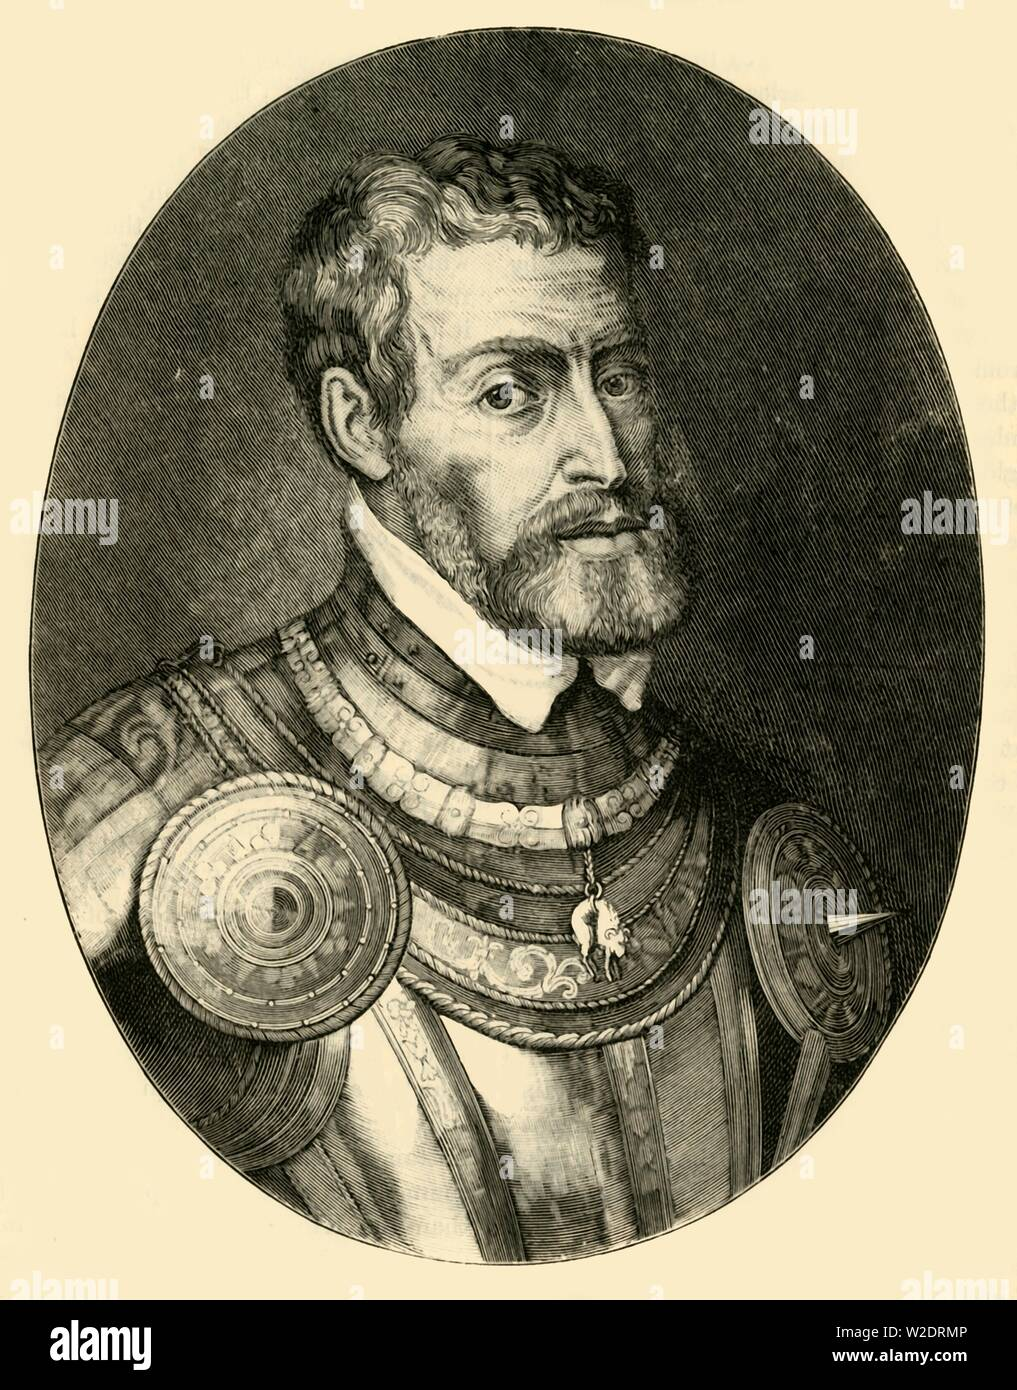 """'The Emperor Charles V', c1530-1540, (1890).  Charles V (1500- 1558),  Holy Roman Emperor from 1519, King of Spain (Castile and Aragon) from 1516 and head of the House of Habsburg.  From """"Cassell's Illustrated Universal History, Vol. IV - Modern History"""", by Edmund Ollier. [Cassell and Company, Limited, London, Paris and Melbourne, 1890] - Stock Image"""